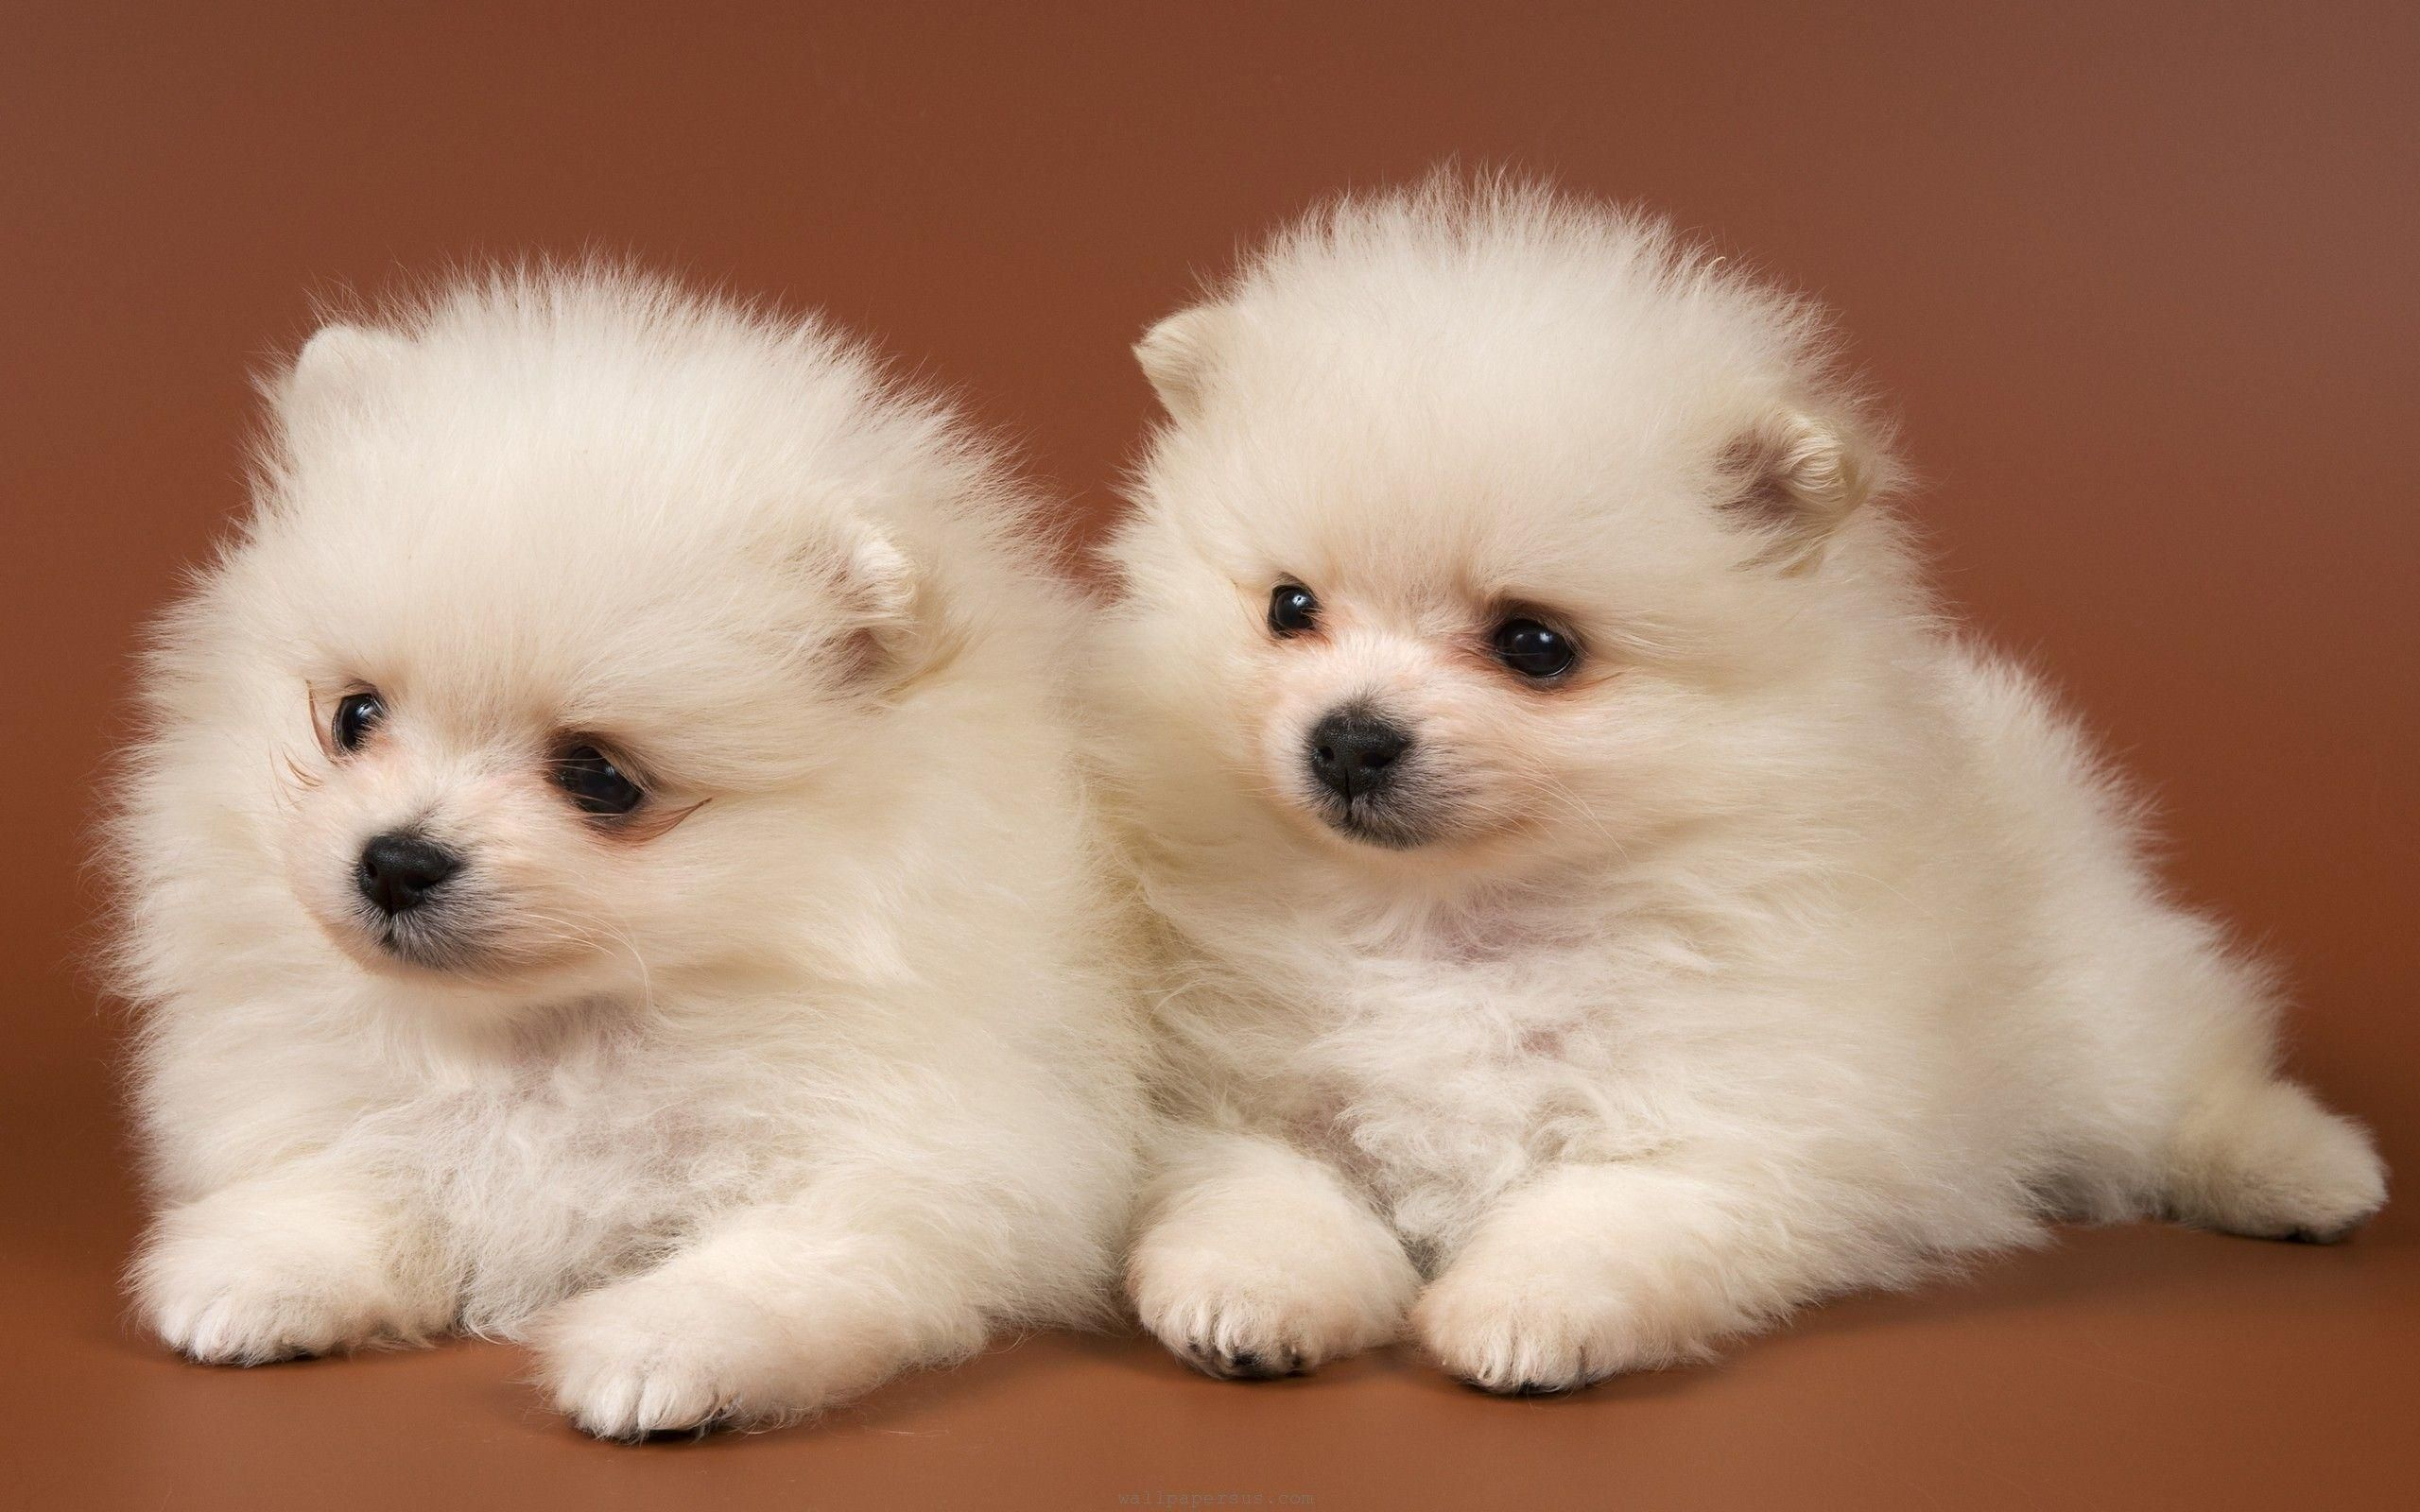 Cute Dogs And Puppies Wallpapers Wallpaper Cave Cute Puppy Wallpaper Cute Puppies Pomeranian Puppy